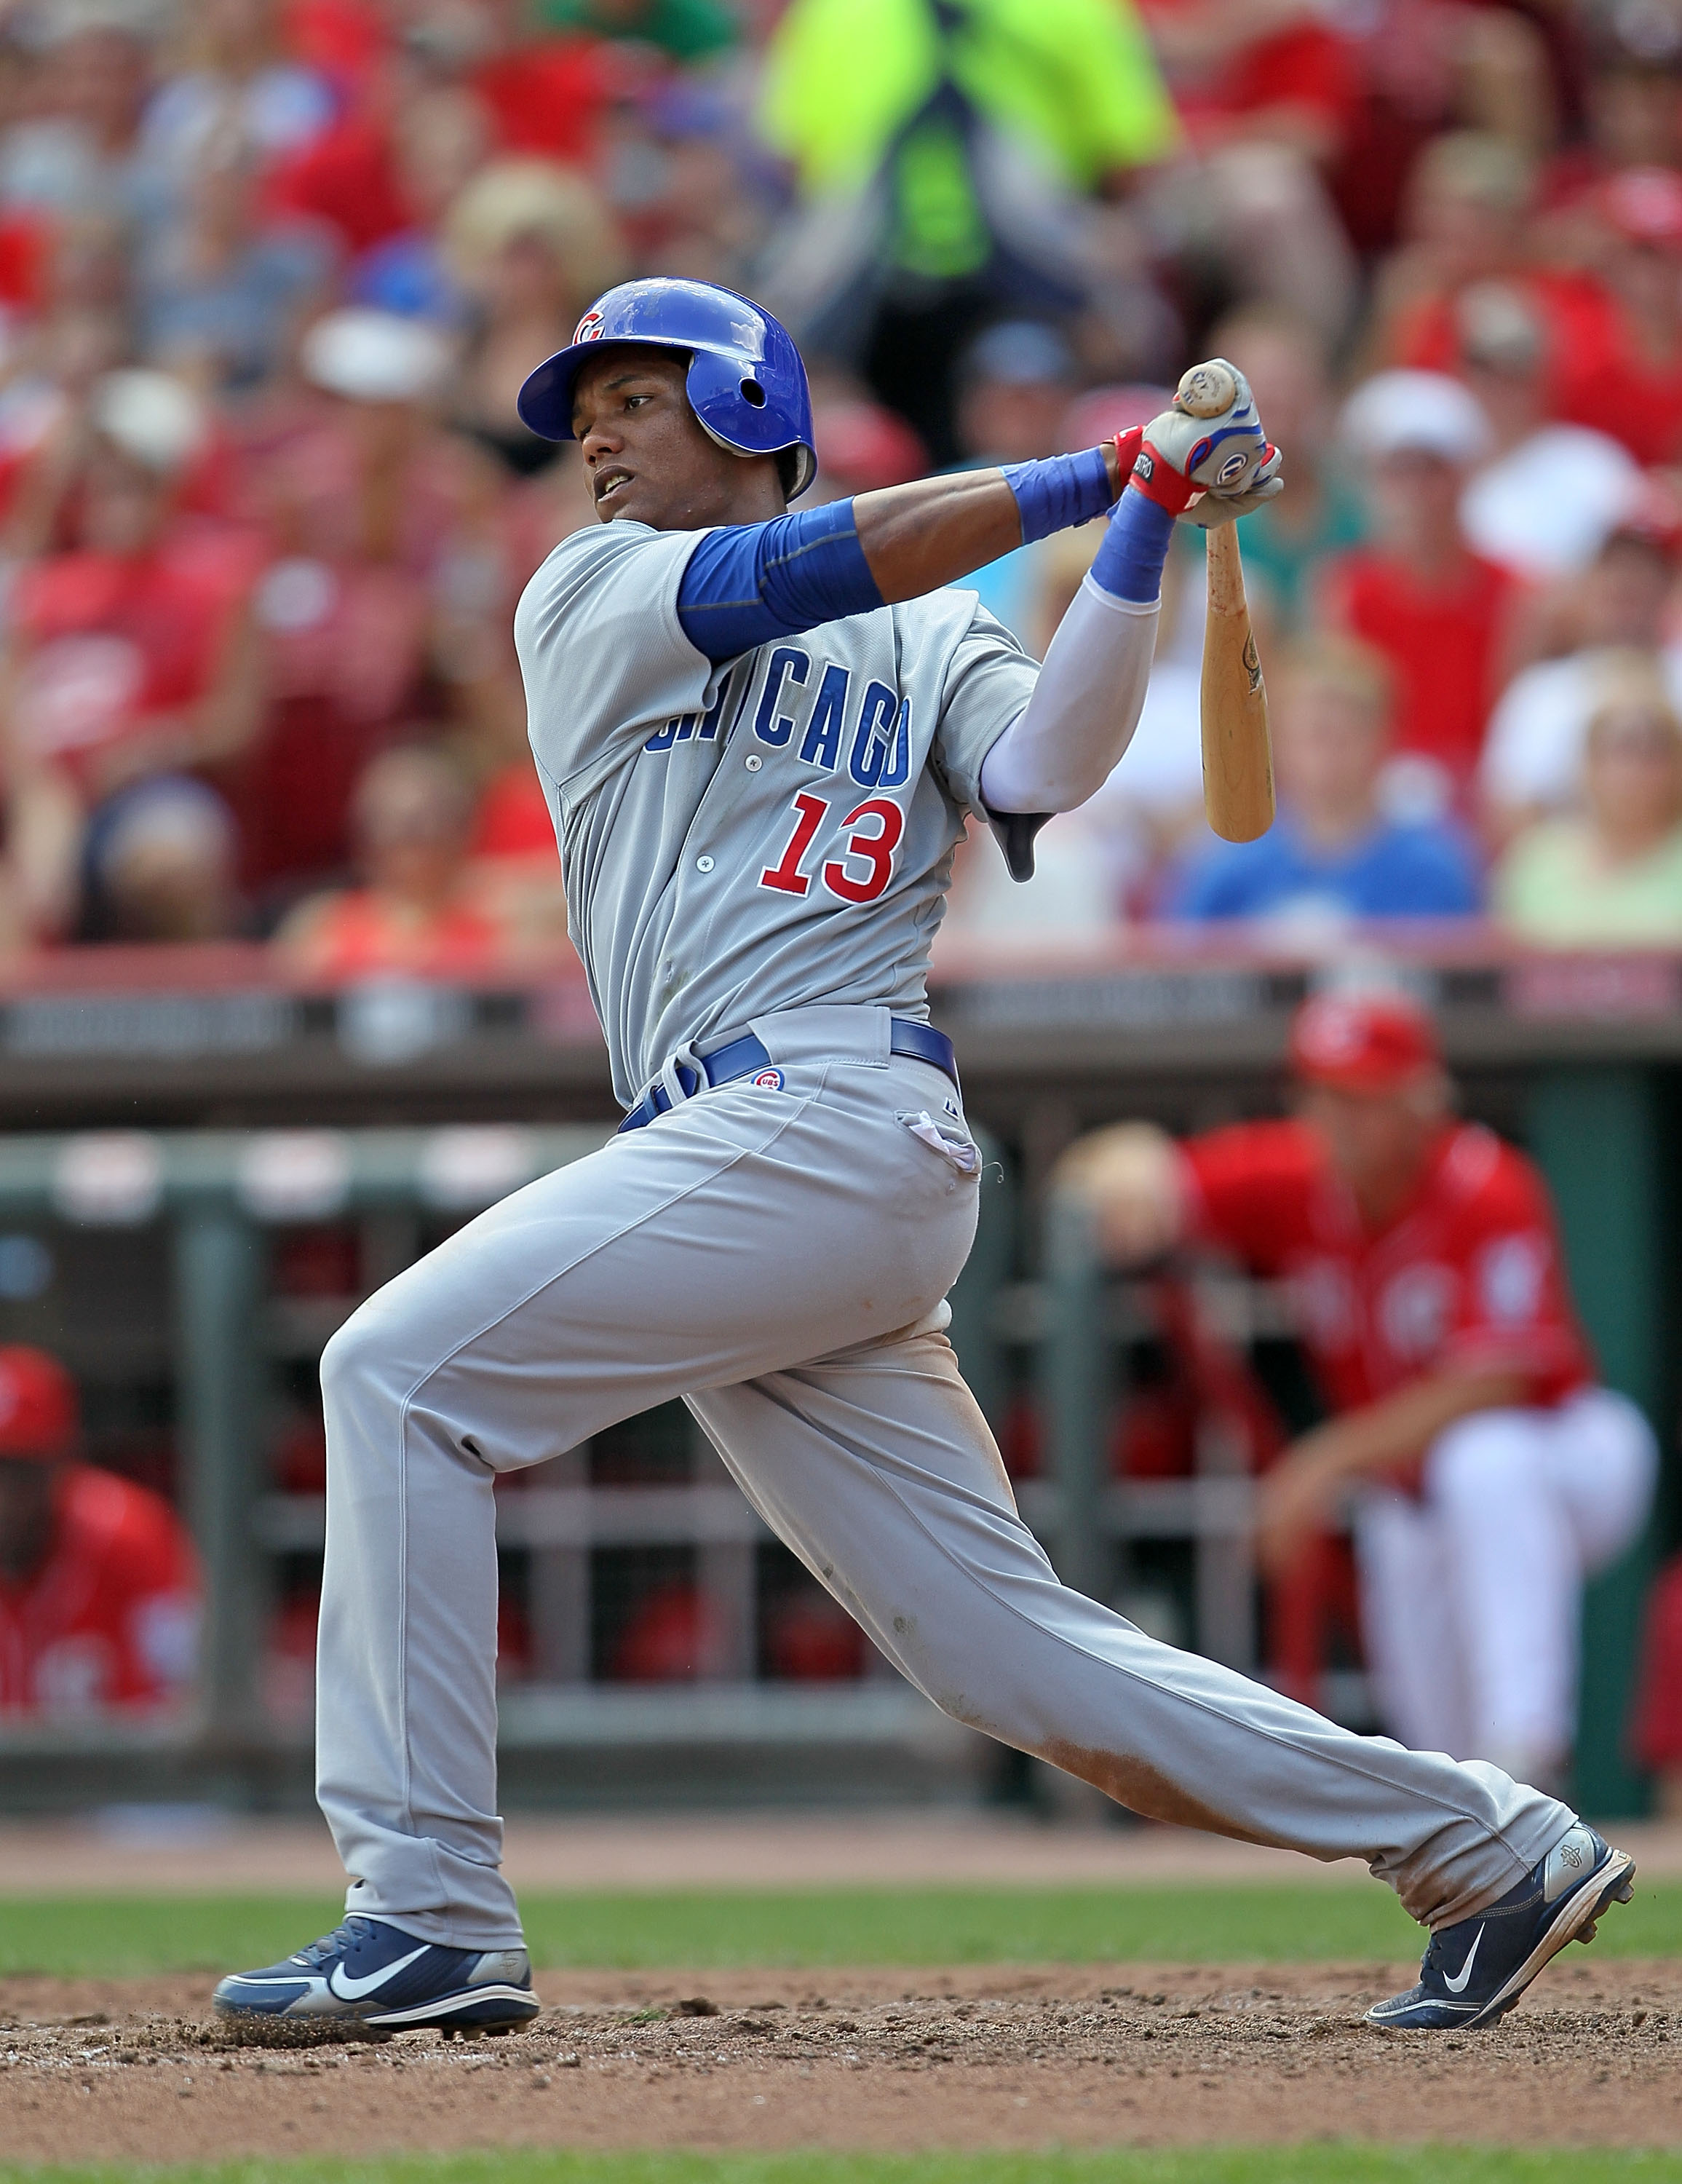 CINCINNATI - AUGUST 29:  Starlin Castro #13 of the Chicago Cubs swings at a pitch during the game against the Cincinnati Reds at Great American Ball Park on August 29, 2010 in Cincinnati, Ohio.  (Photo by Andy Lyons/Getty Images)